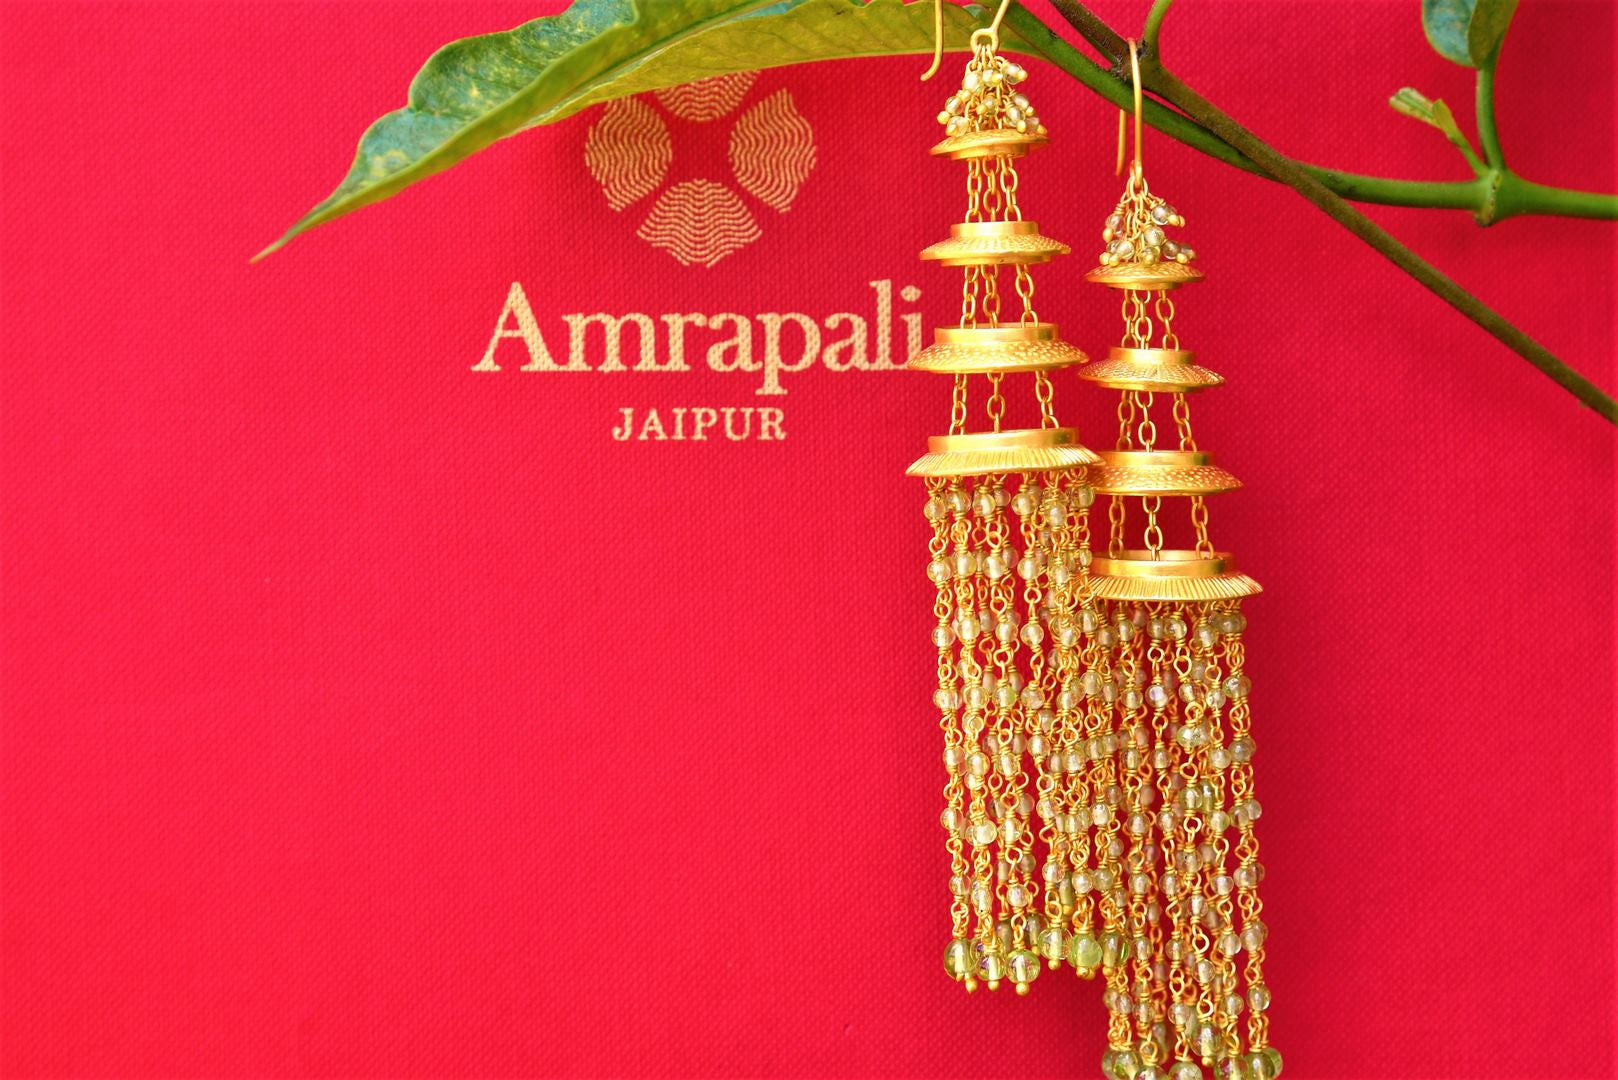 Buy beautiful Silver Gold Plated Dangling Peridot Amrapali Earrings Online from Pure Elegance. Shop gold plated Indian jewelry from our store for women in USA for every occasion.-closeup